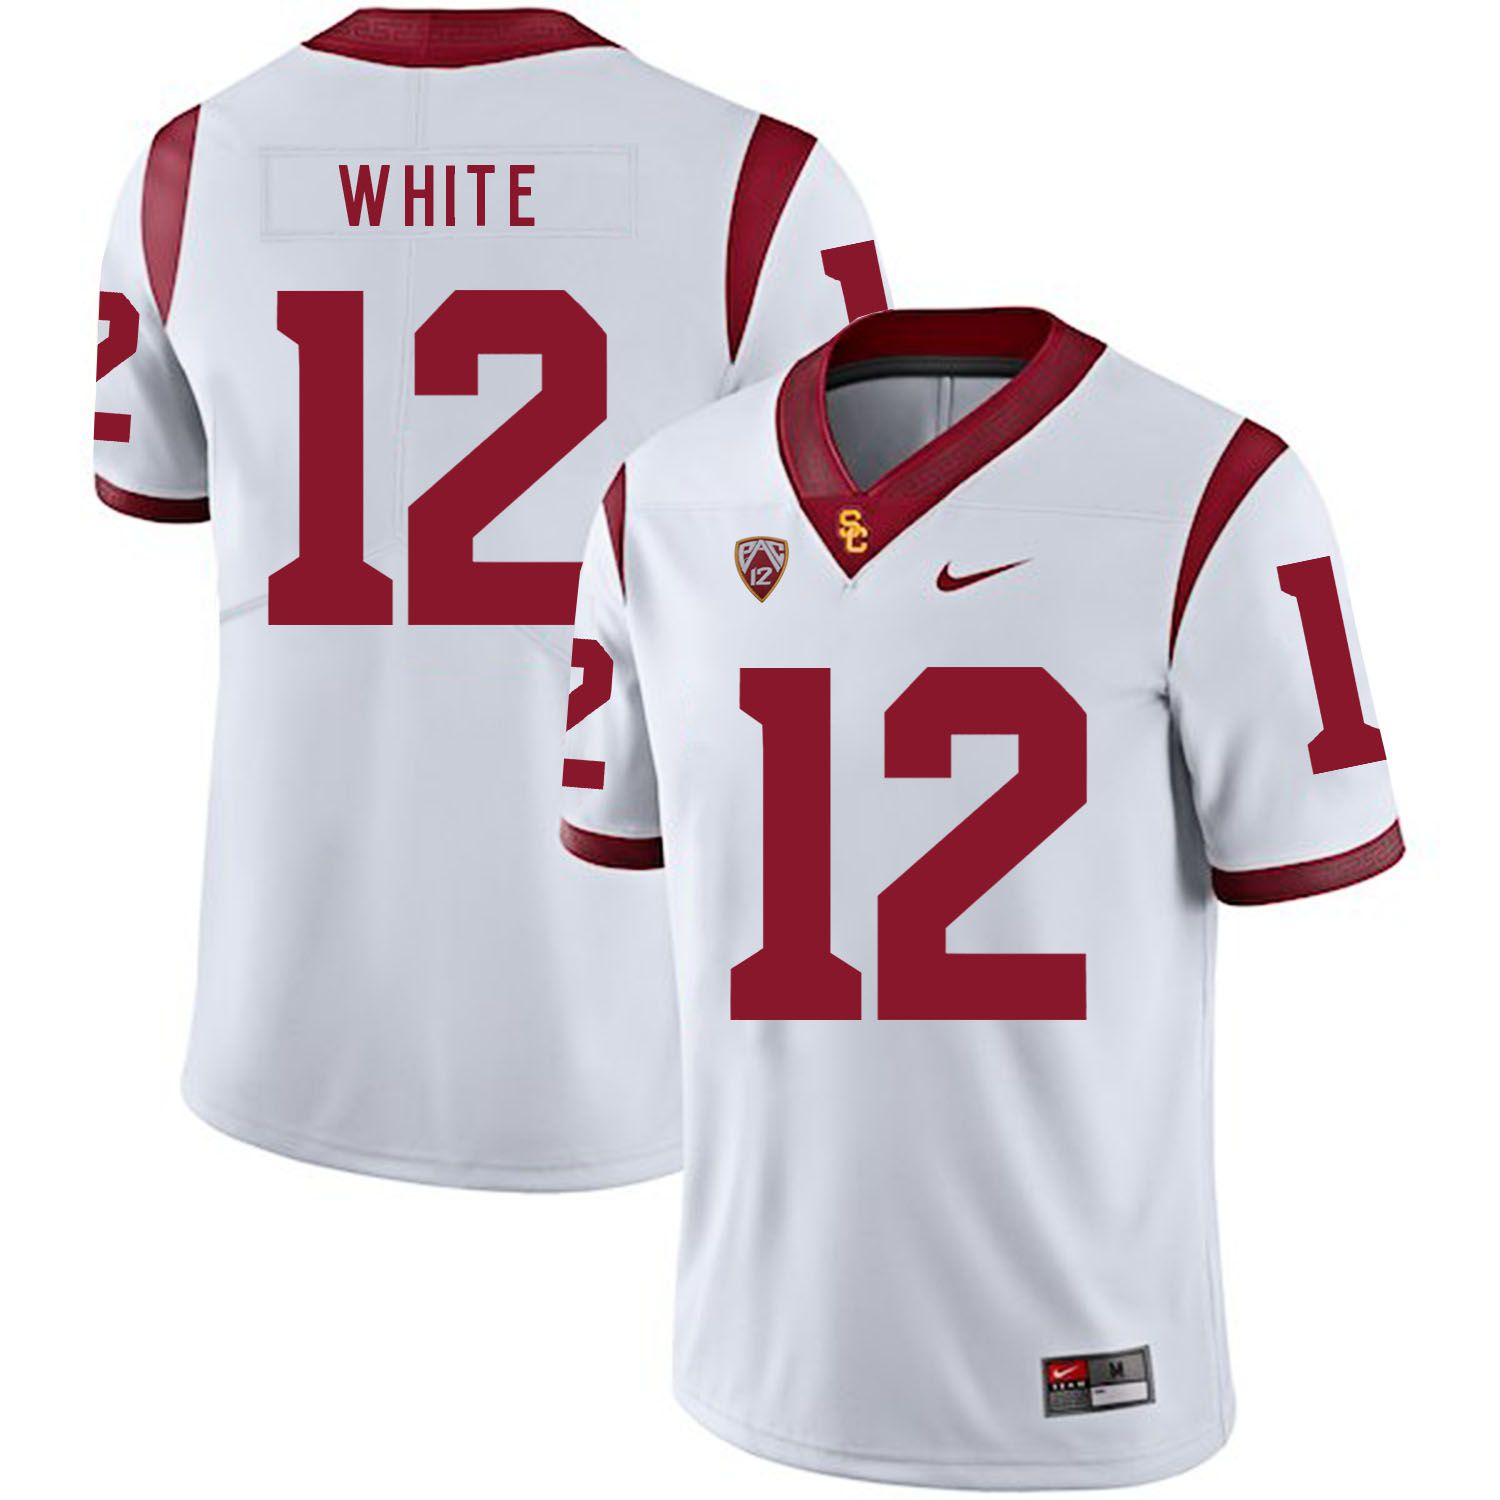 Men USC Trojans 12 White White Customized NCAA Jerseys